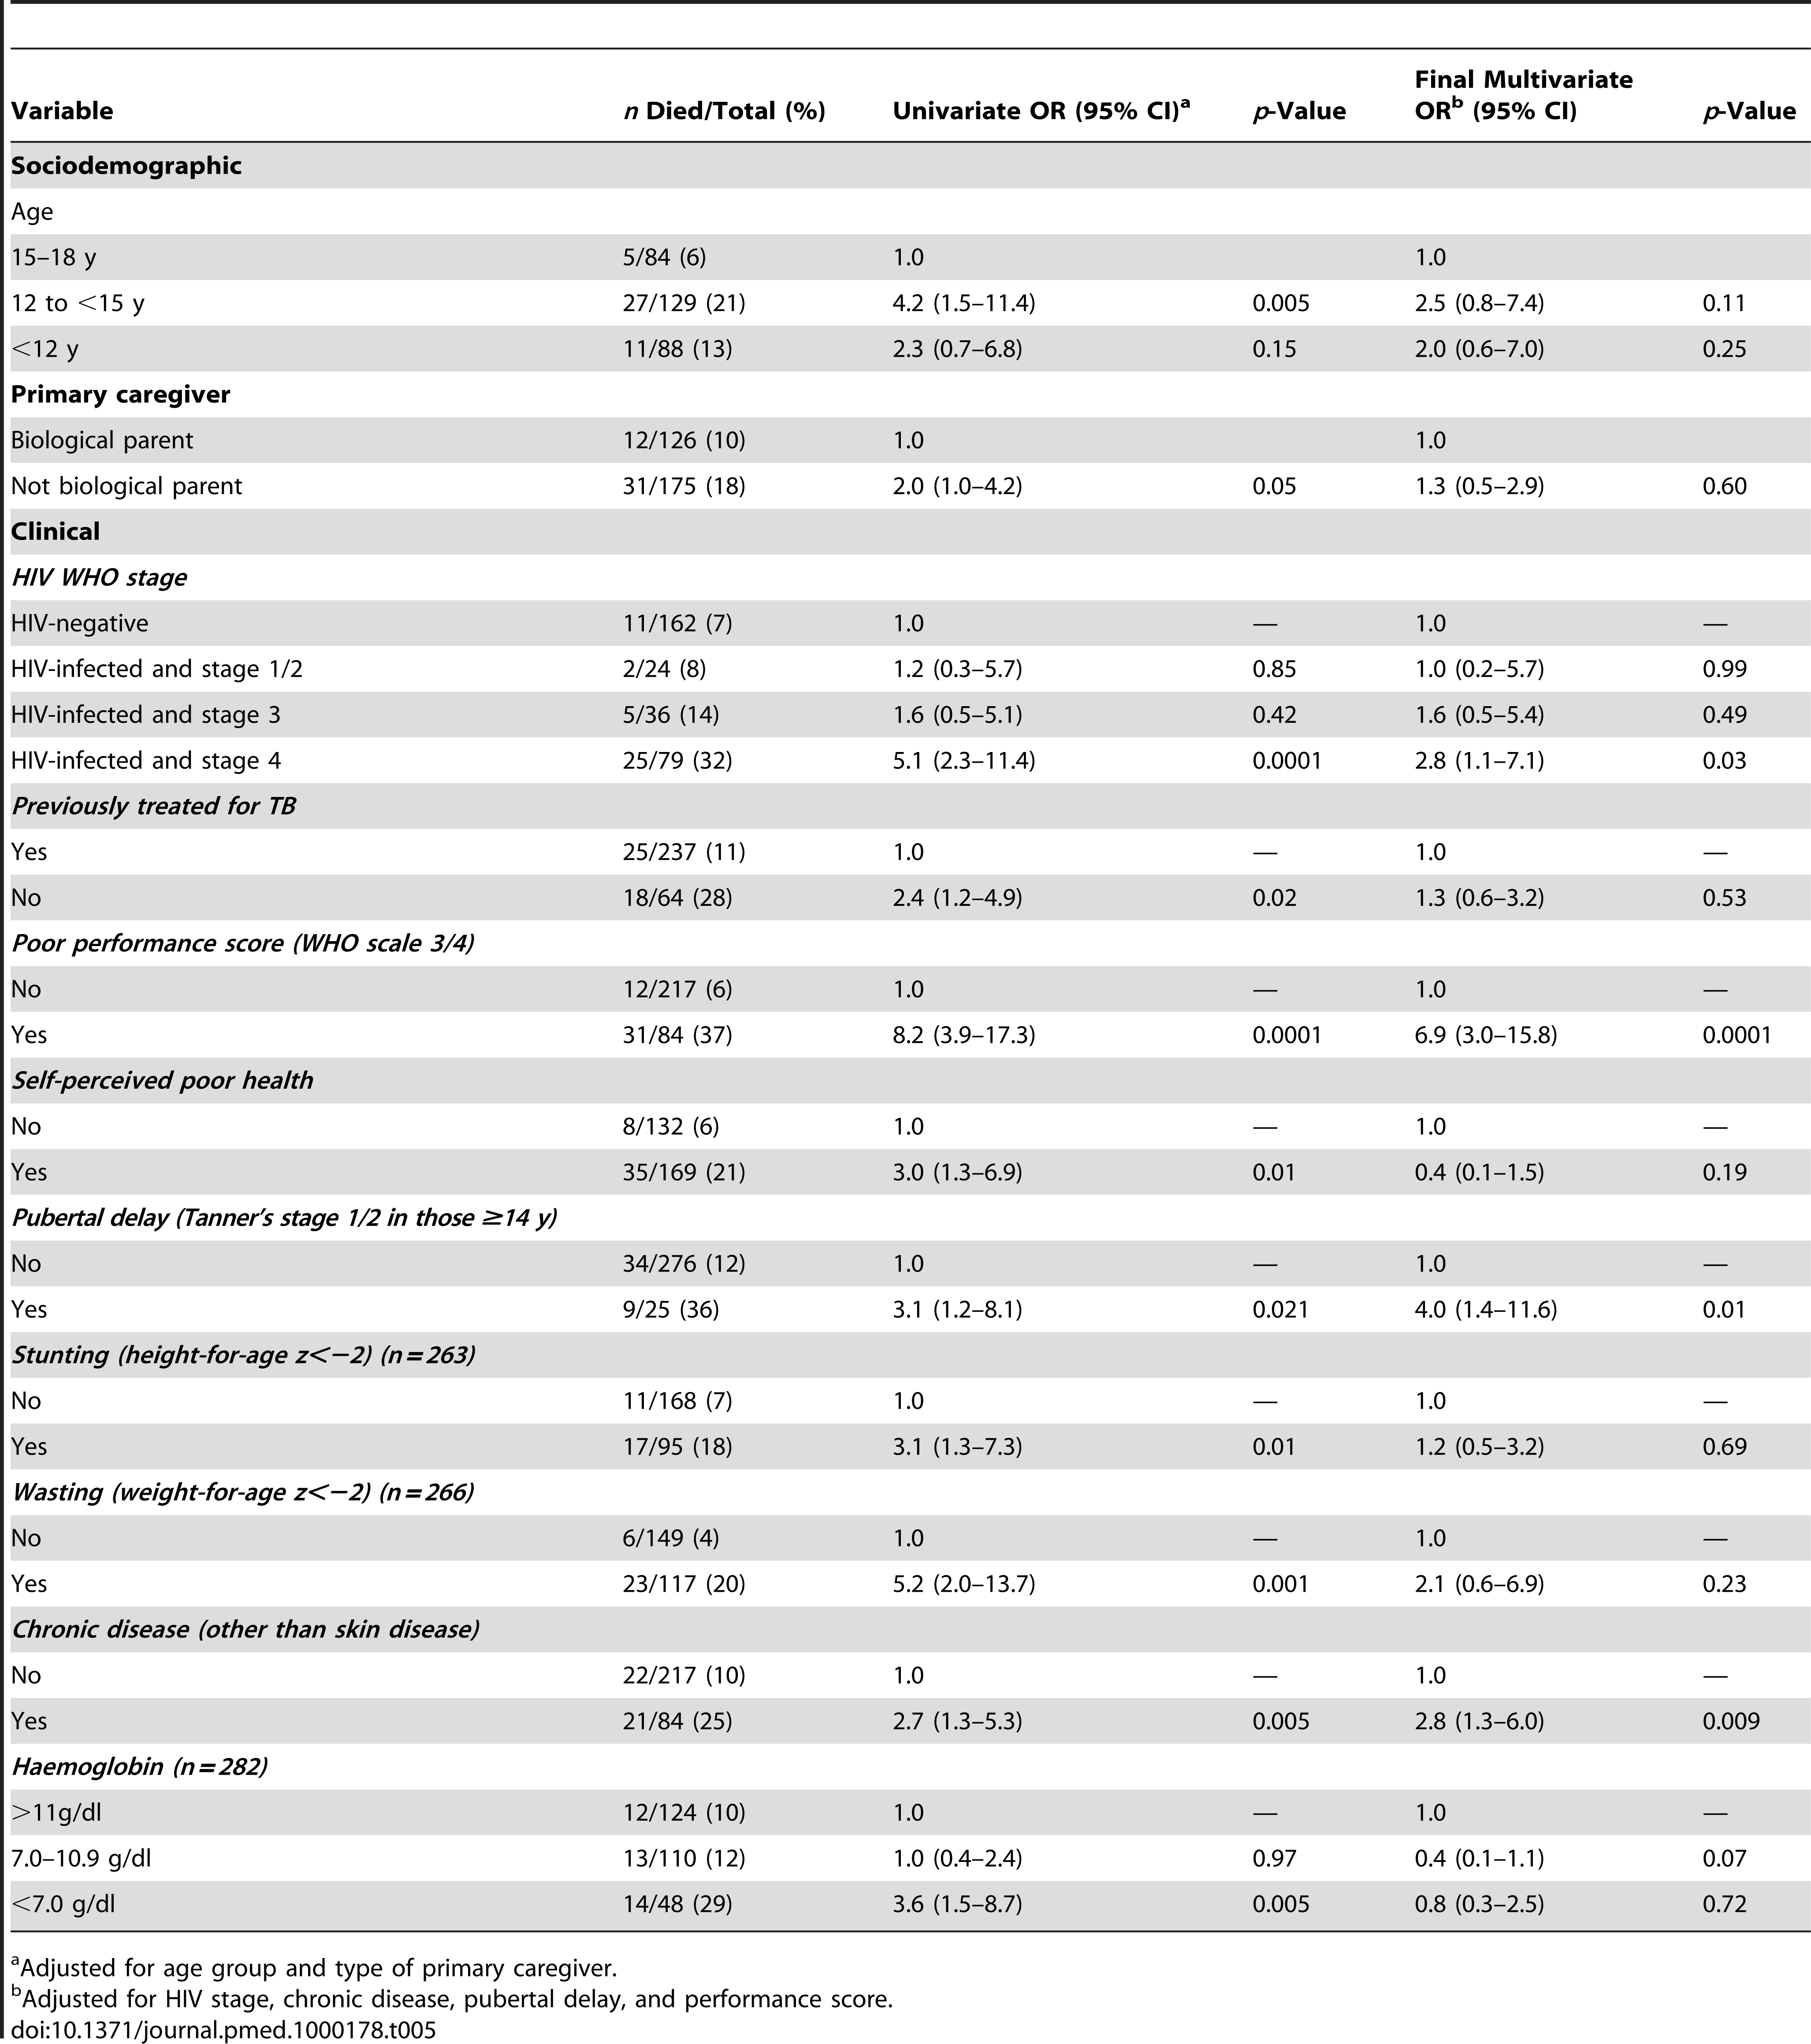 Risk factors for death among adolescents admitted to hospital (<i>n</i>=301 unless specified).